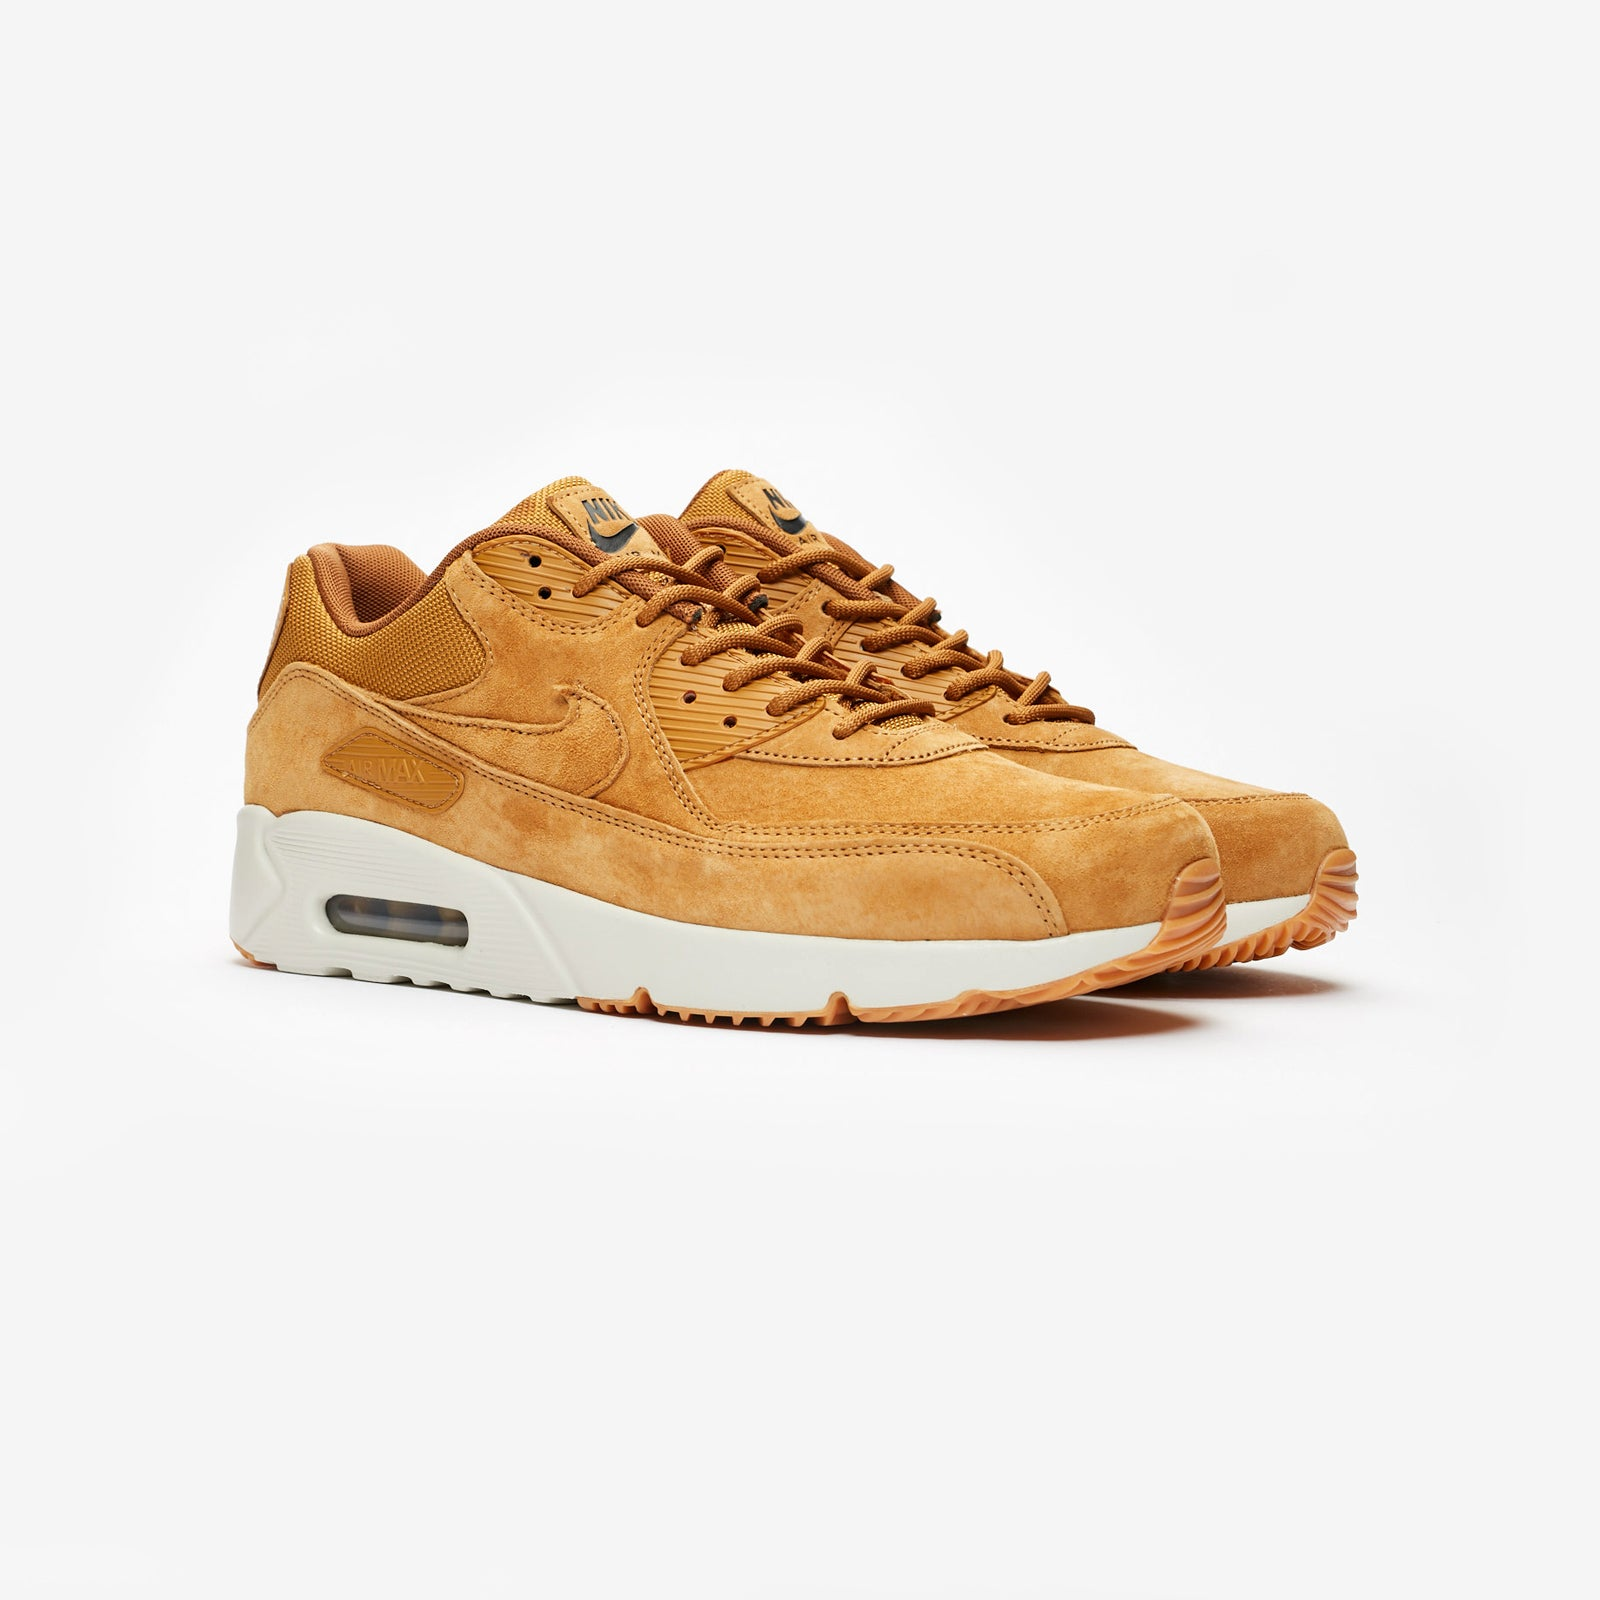 new products 41911 dcbc8 Nike Air Max 90 Ultra 2.0 LTR WHEAT WHEAT-LIGHT BONE-GUM MED BROWN (924447- 700)